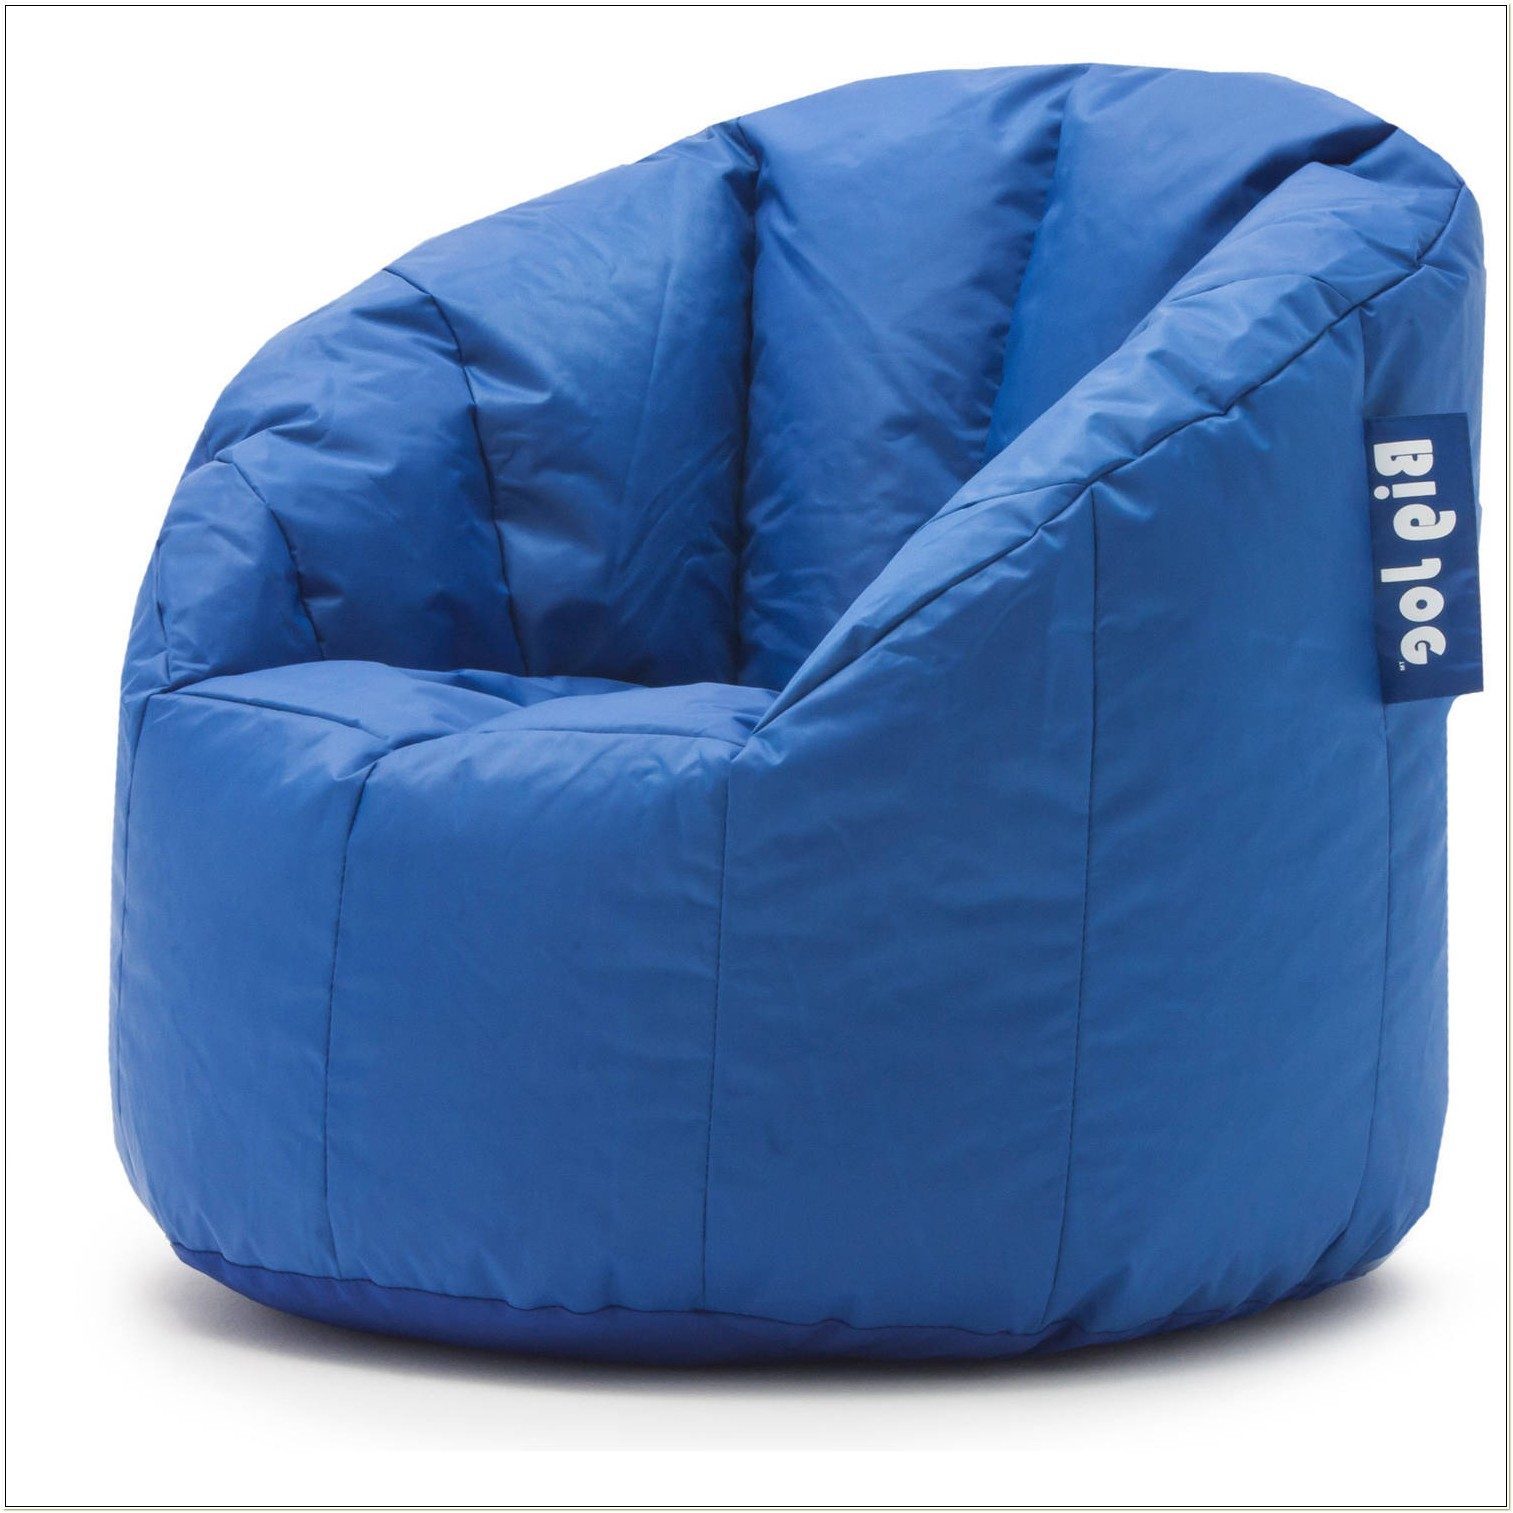 Little Joe Bean Bag Chair